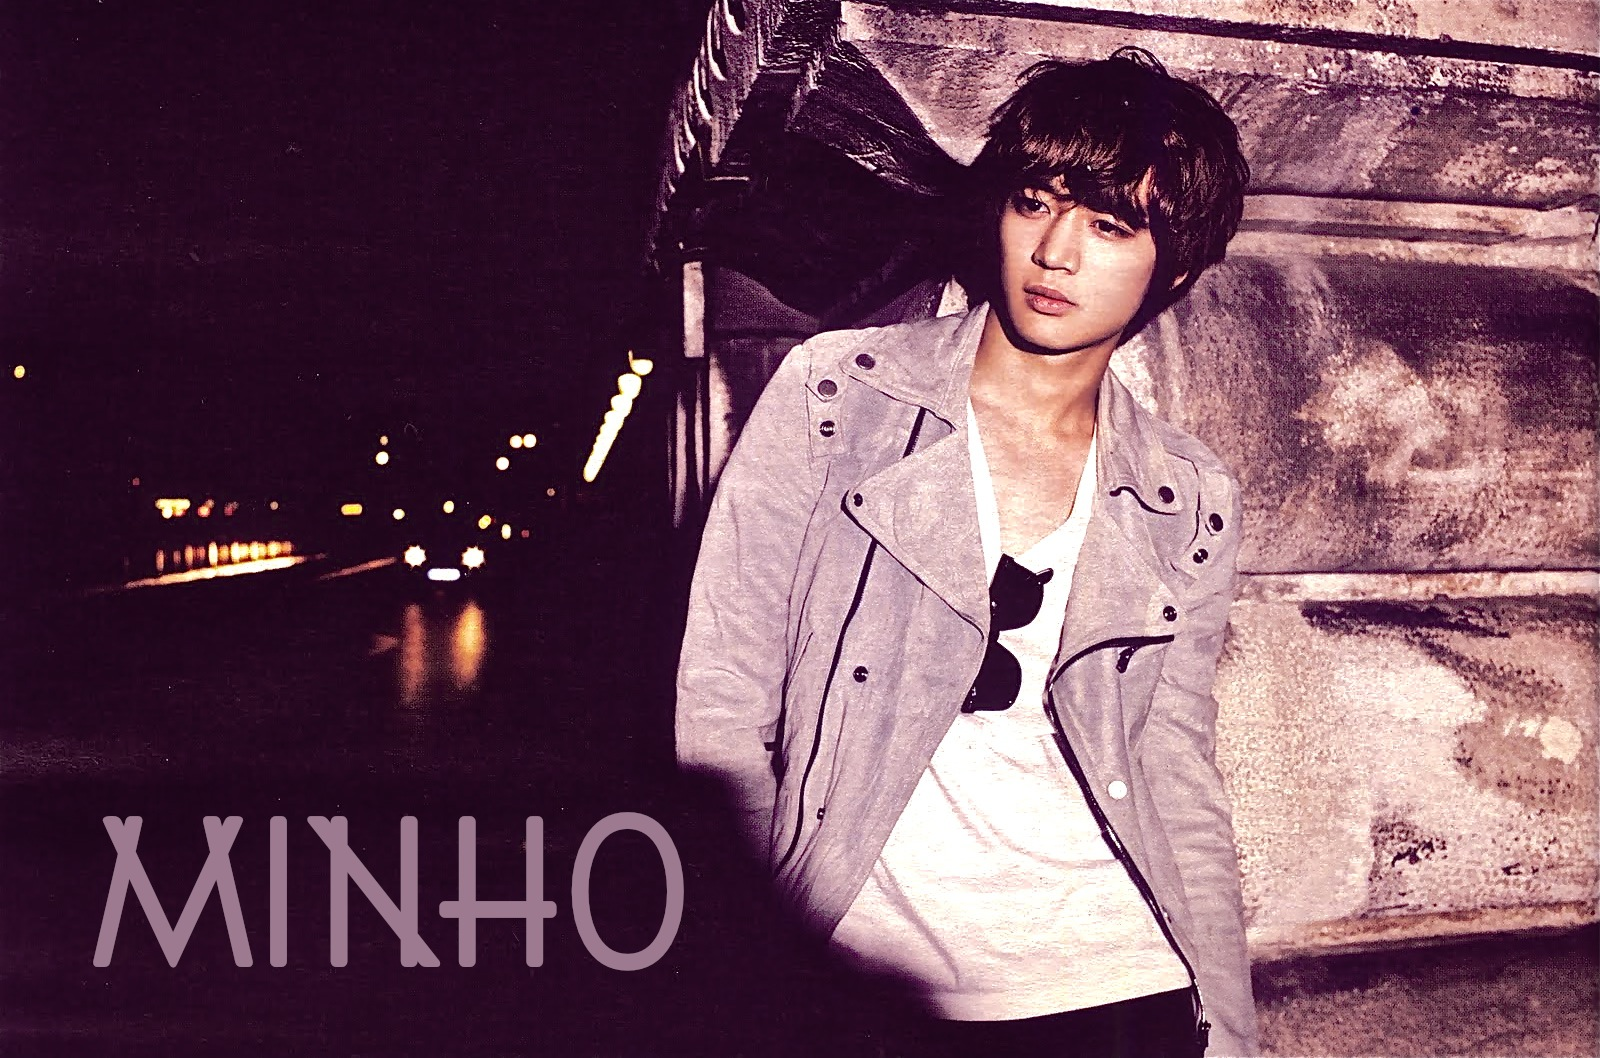 MINHO   Choi Minho Photo 34003741 1600x1058